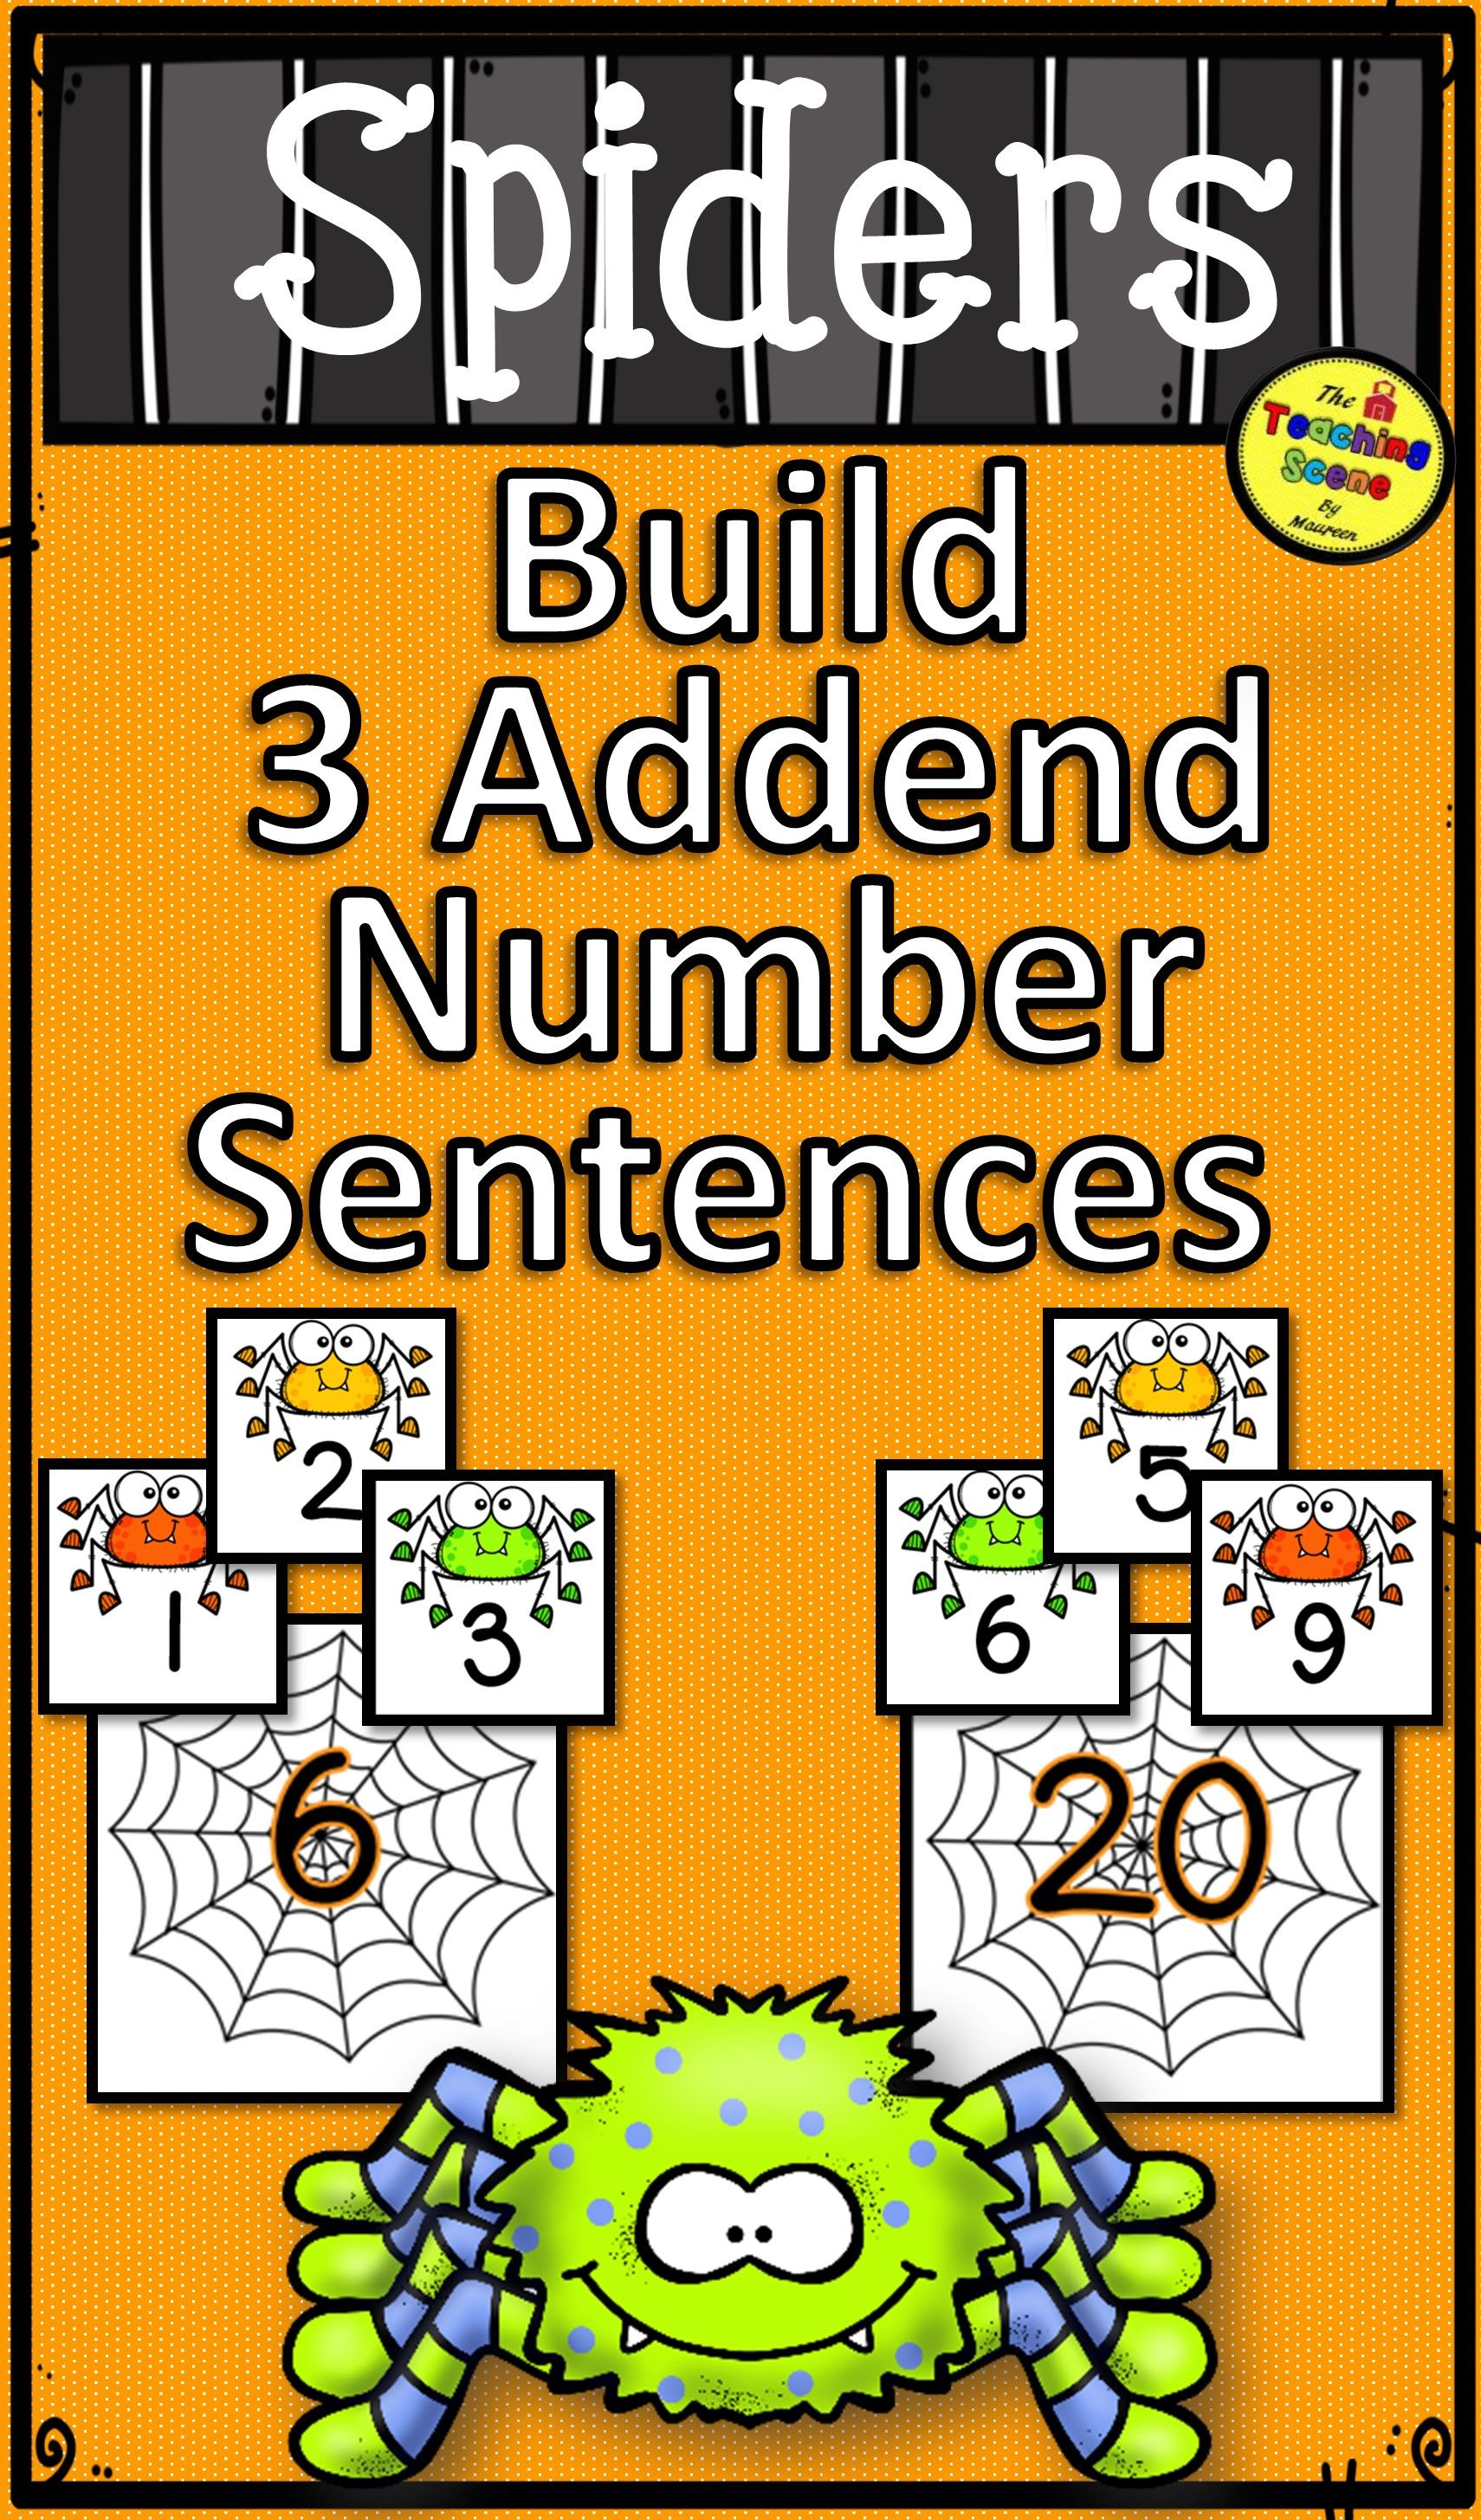 Spiders Build 3 Addend Addition Amp Subtraction Number